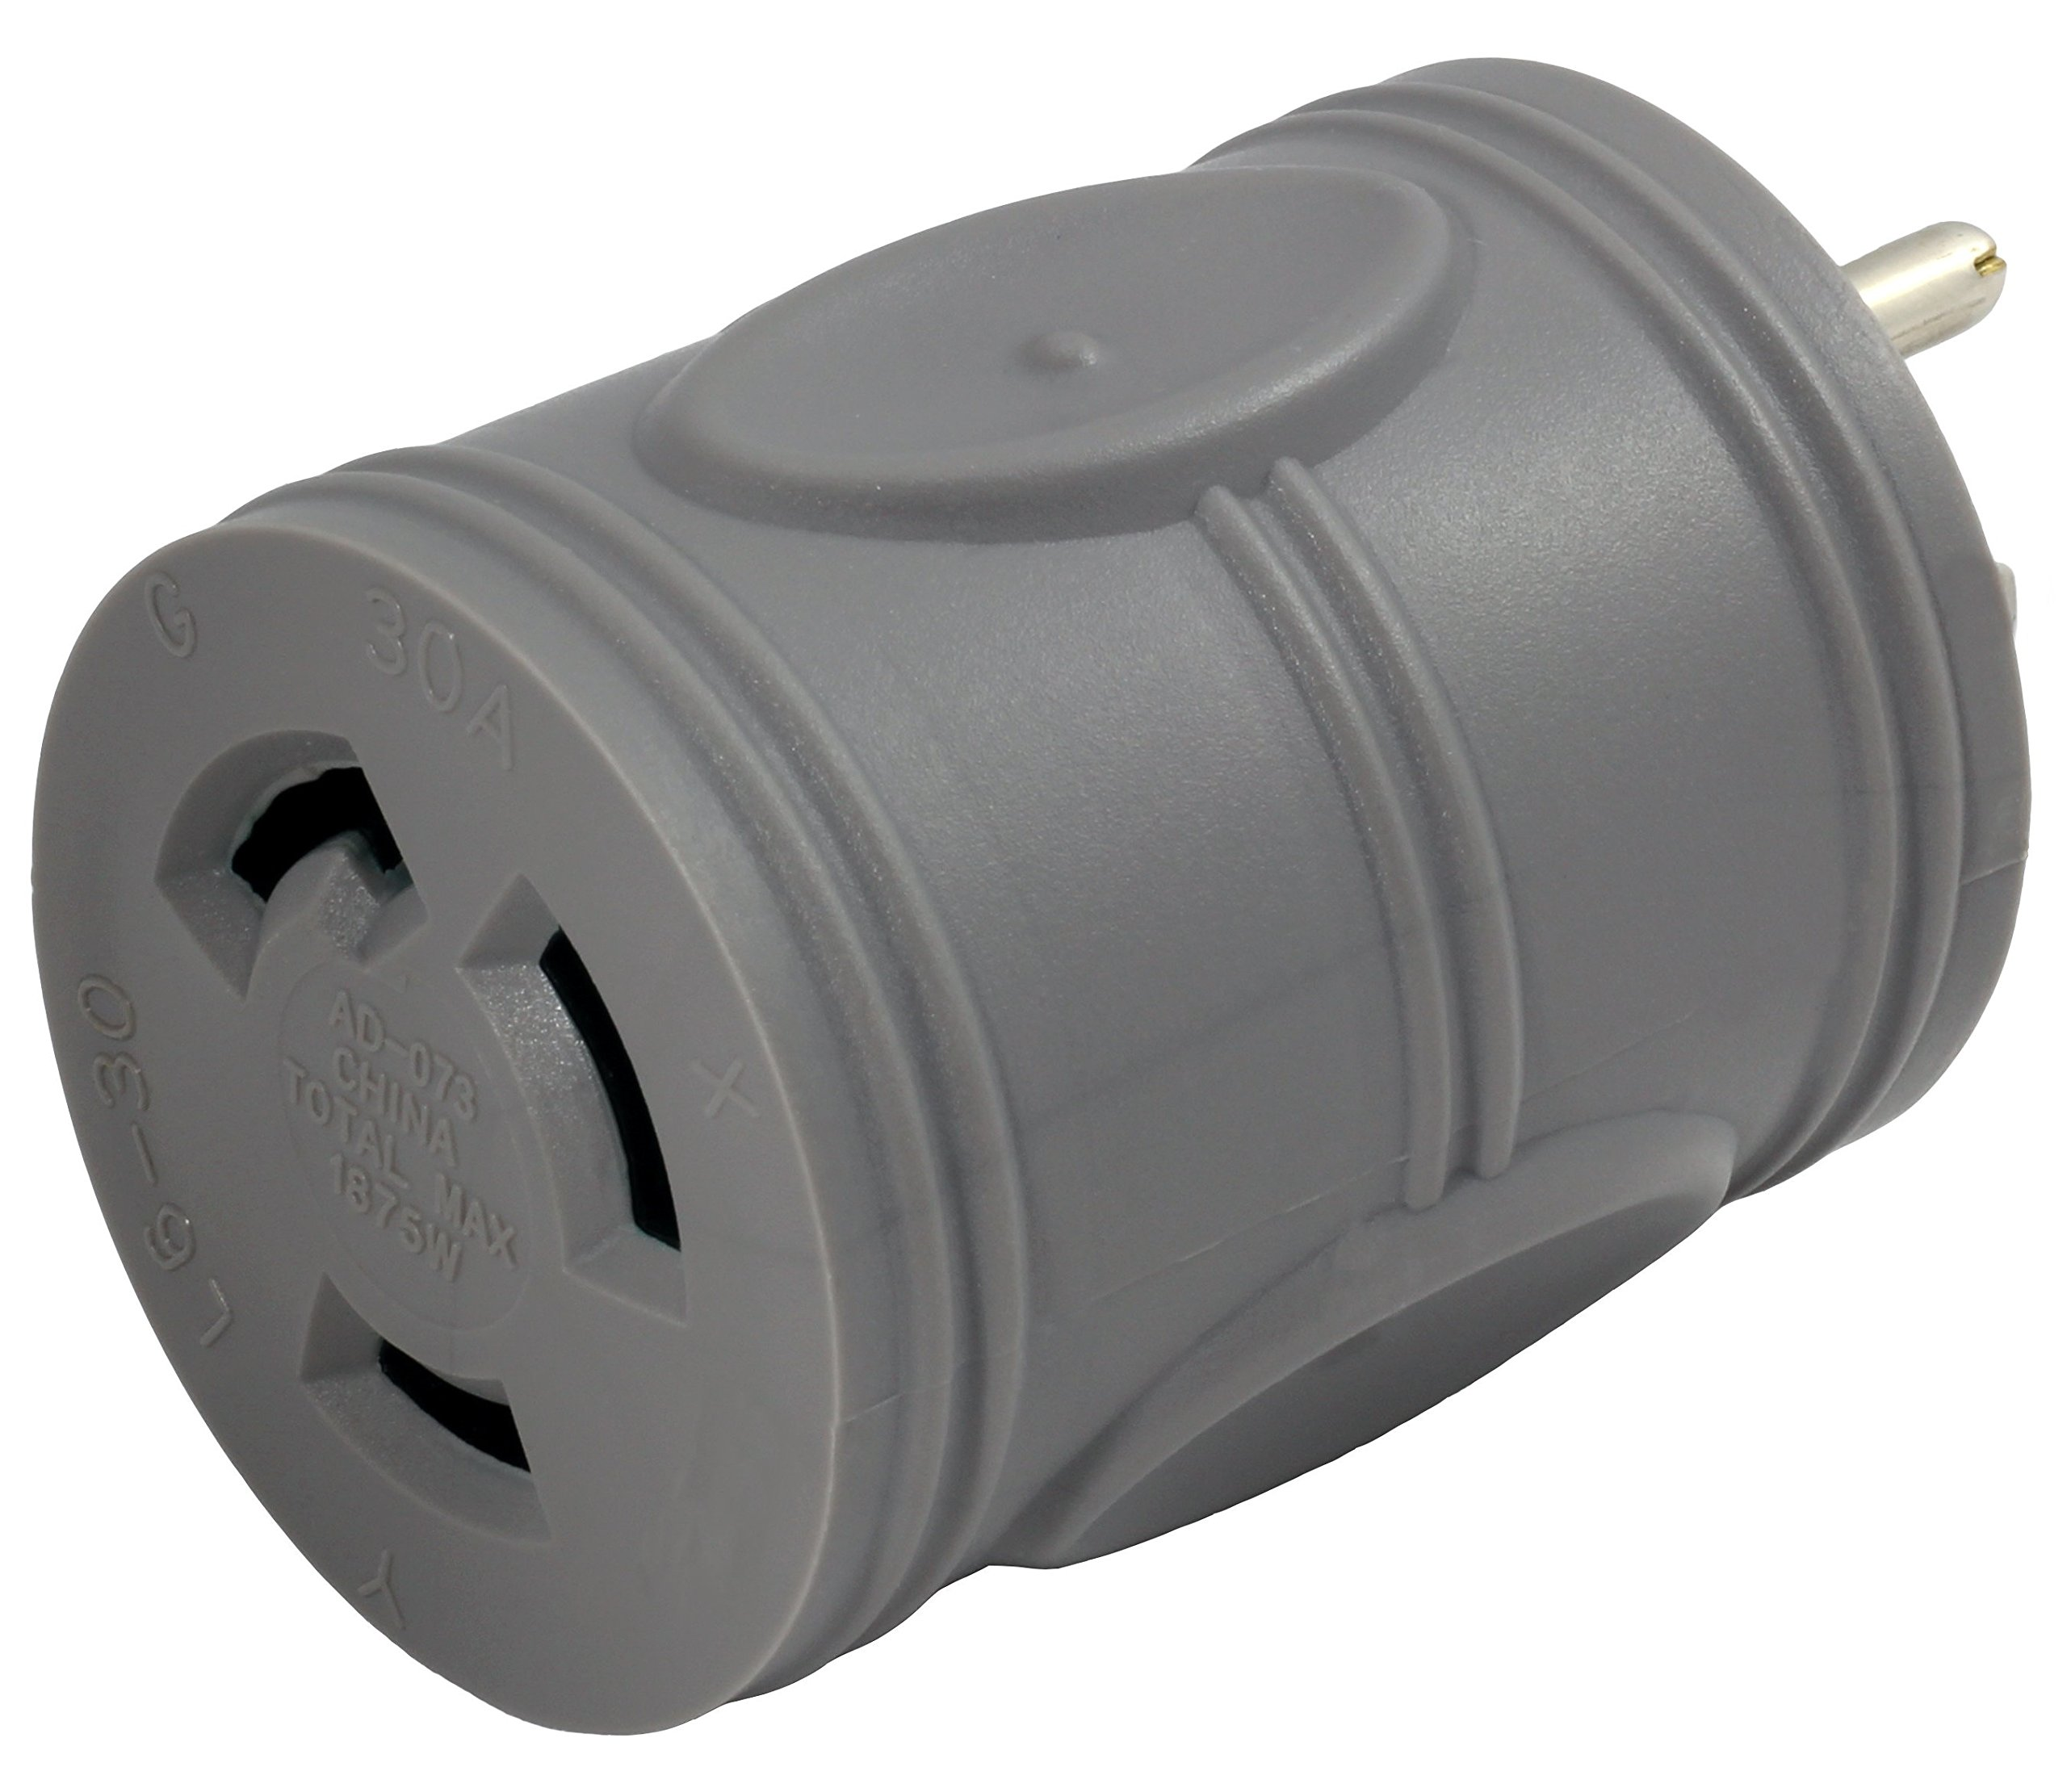 AC WORKS [EV515L630] EVSE Upgrade Electric Vehicle Charging Adapter 15Amp Household Plug to L6-30R Female Connector